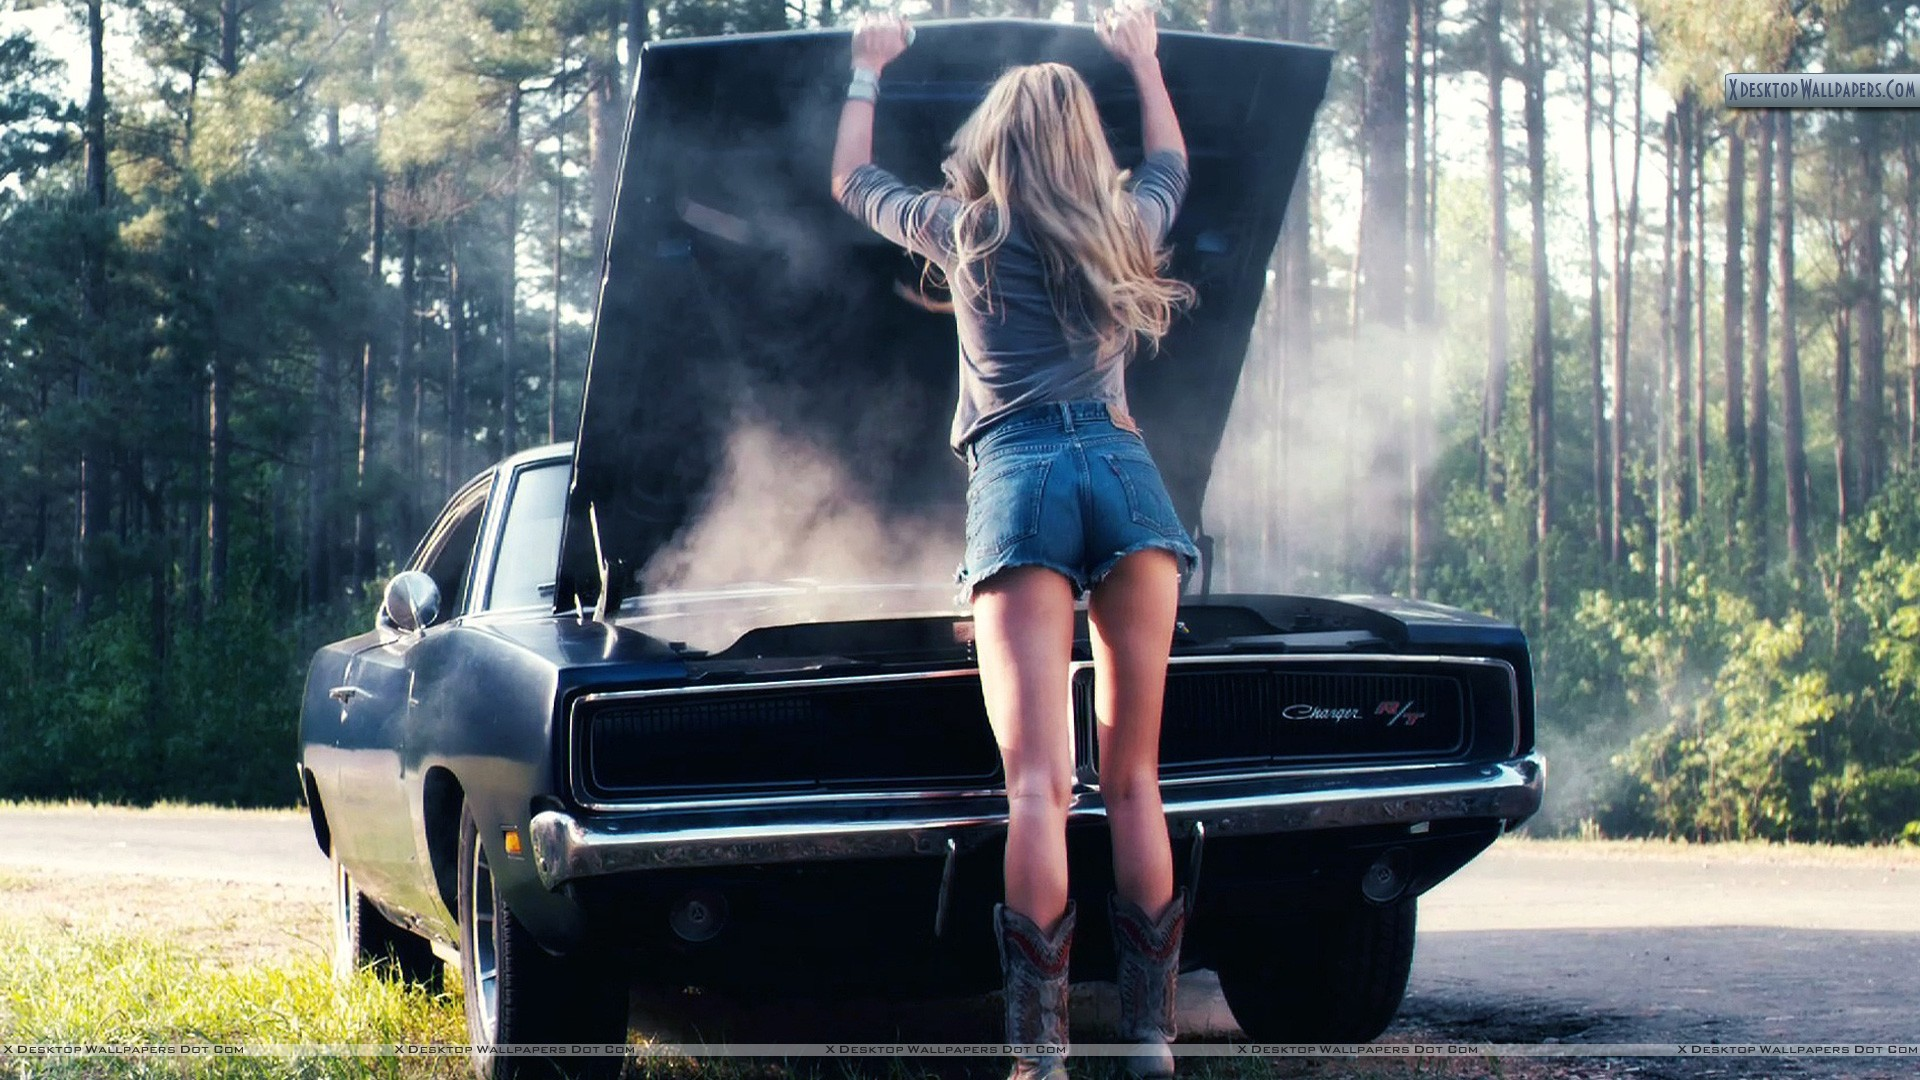 Amber heard checking engine in drive angry wallpaper you are viewing wallpaper voltagebd Images